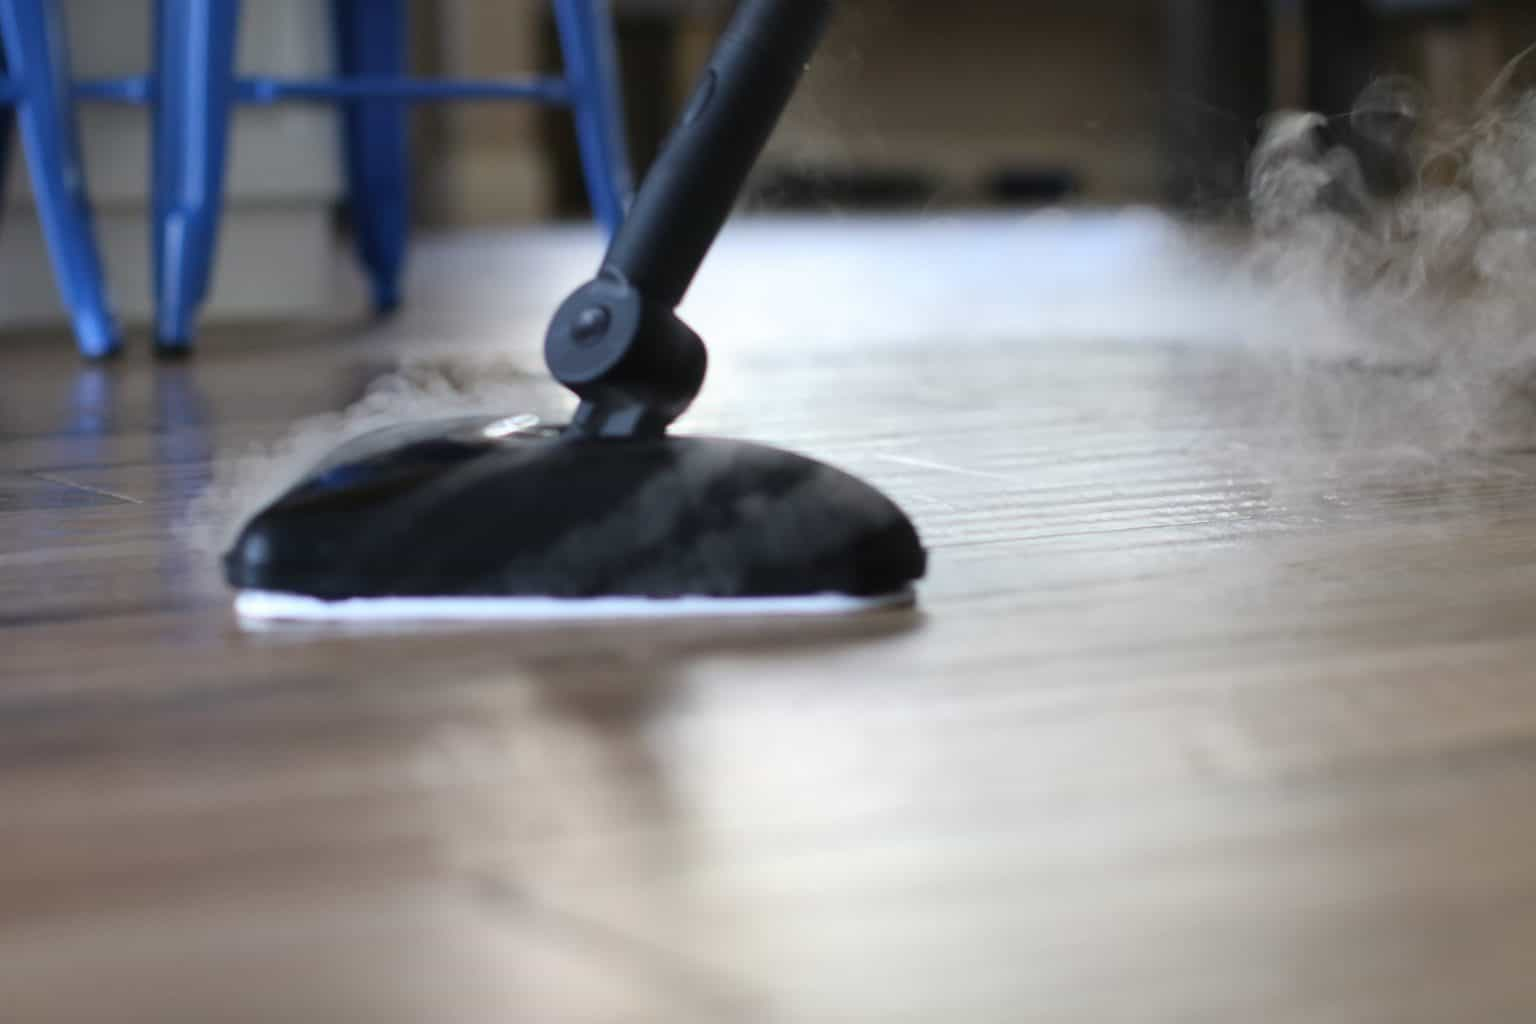 Steam mop being used for wood floors